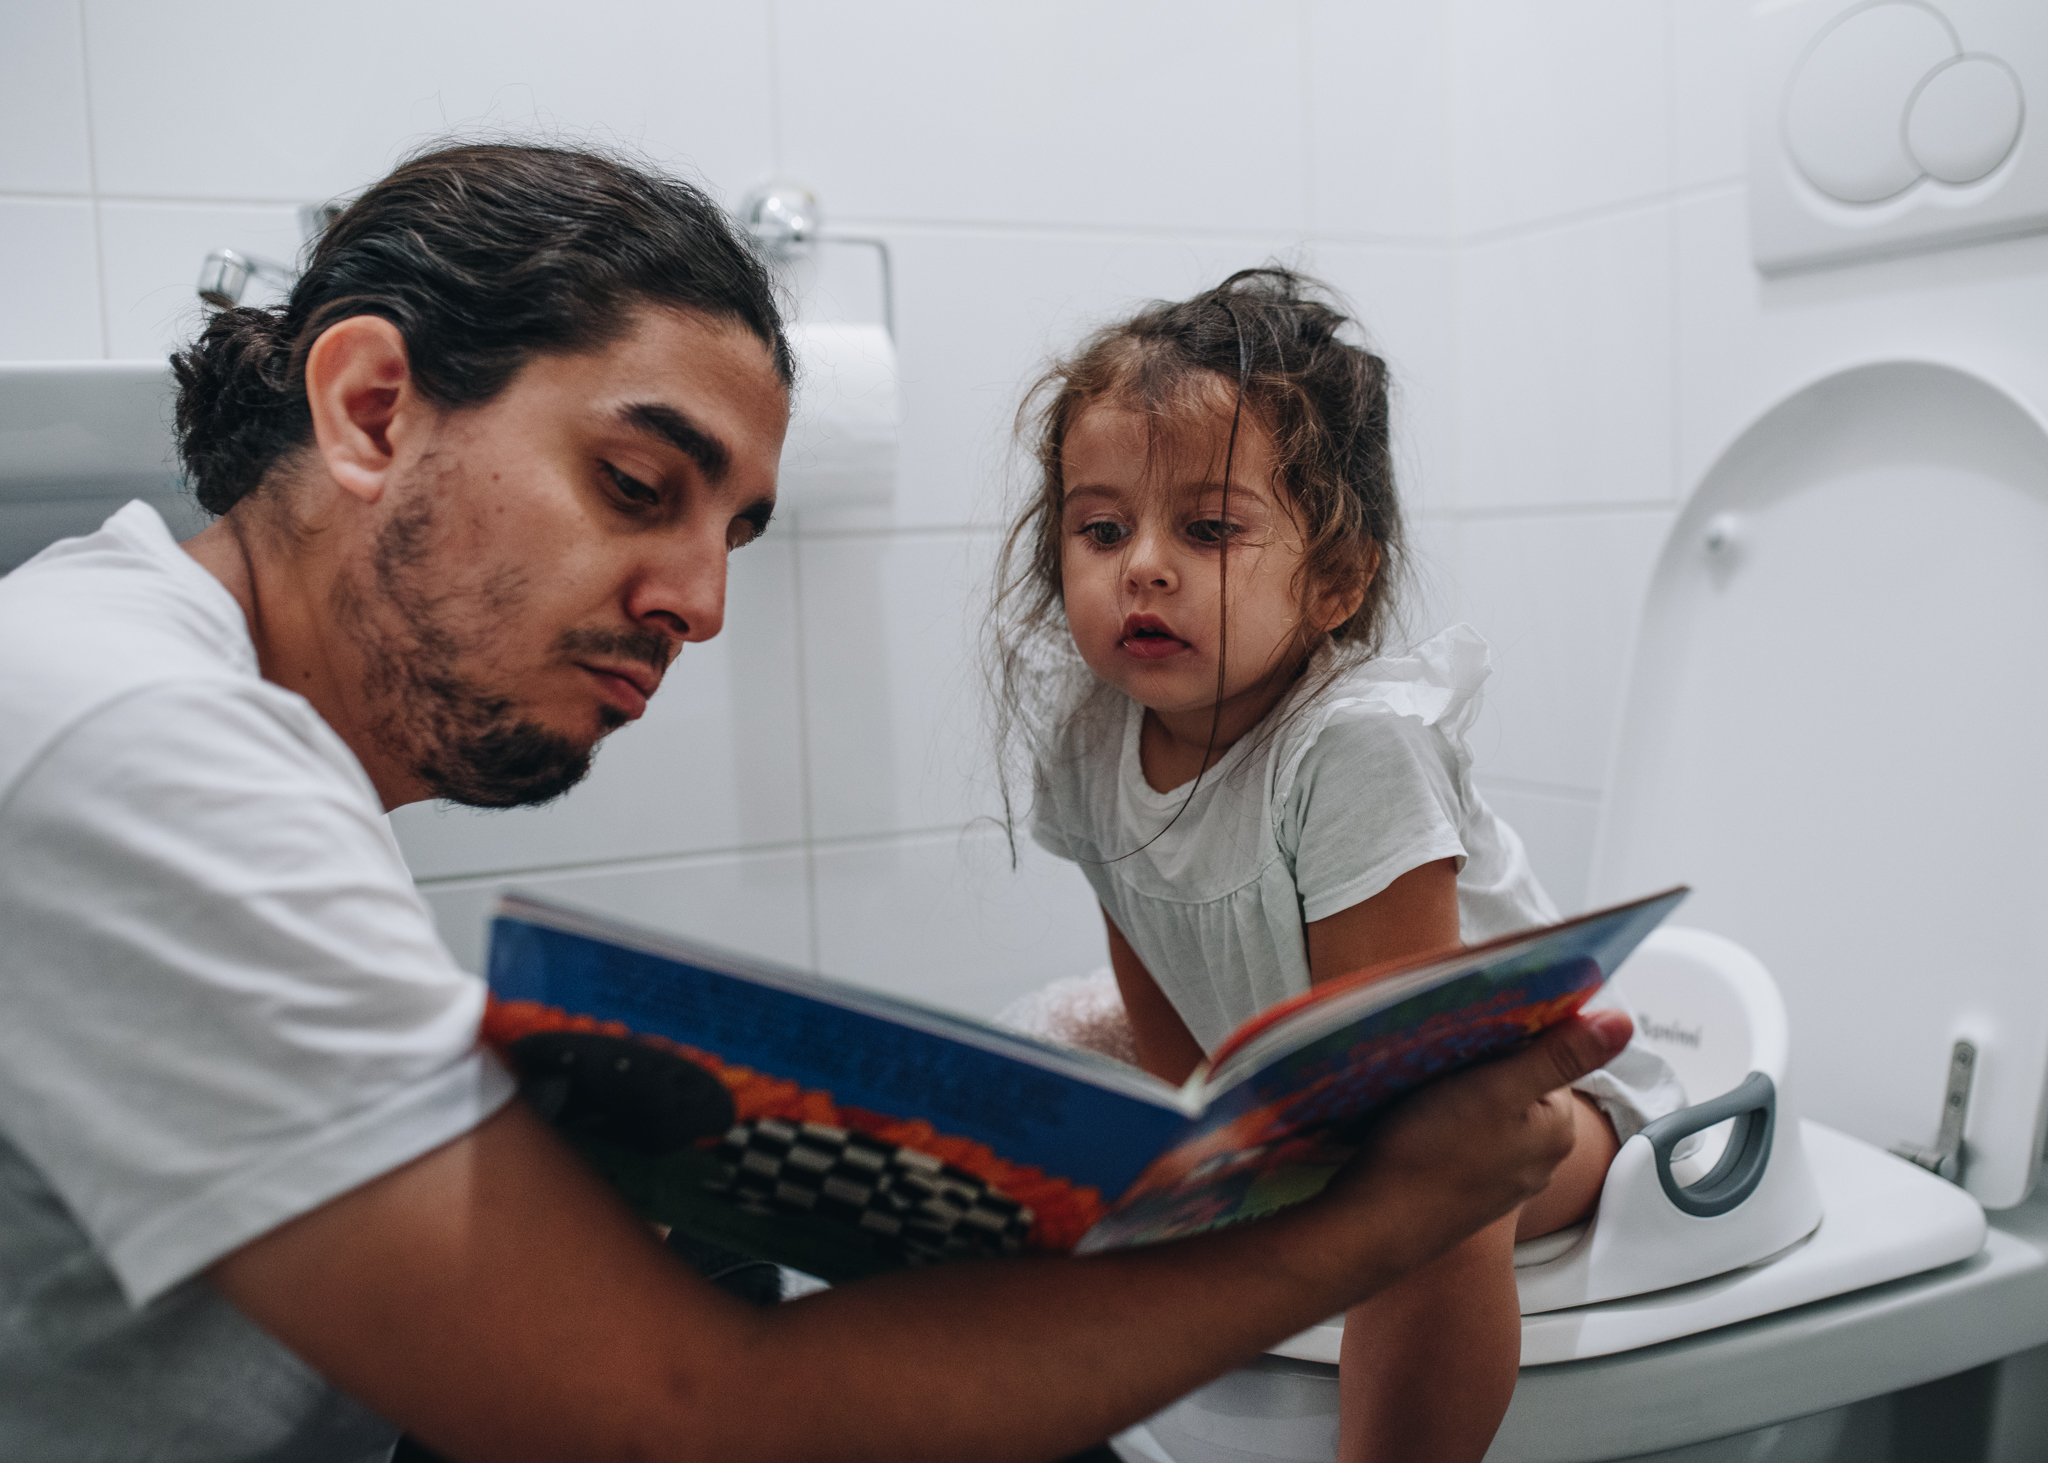 Dad reading a book to his daughter while she's sitting on the toilet